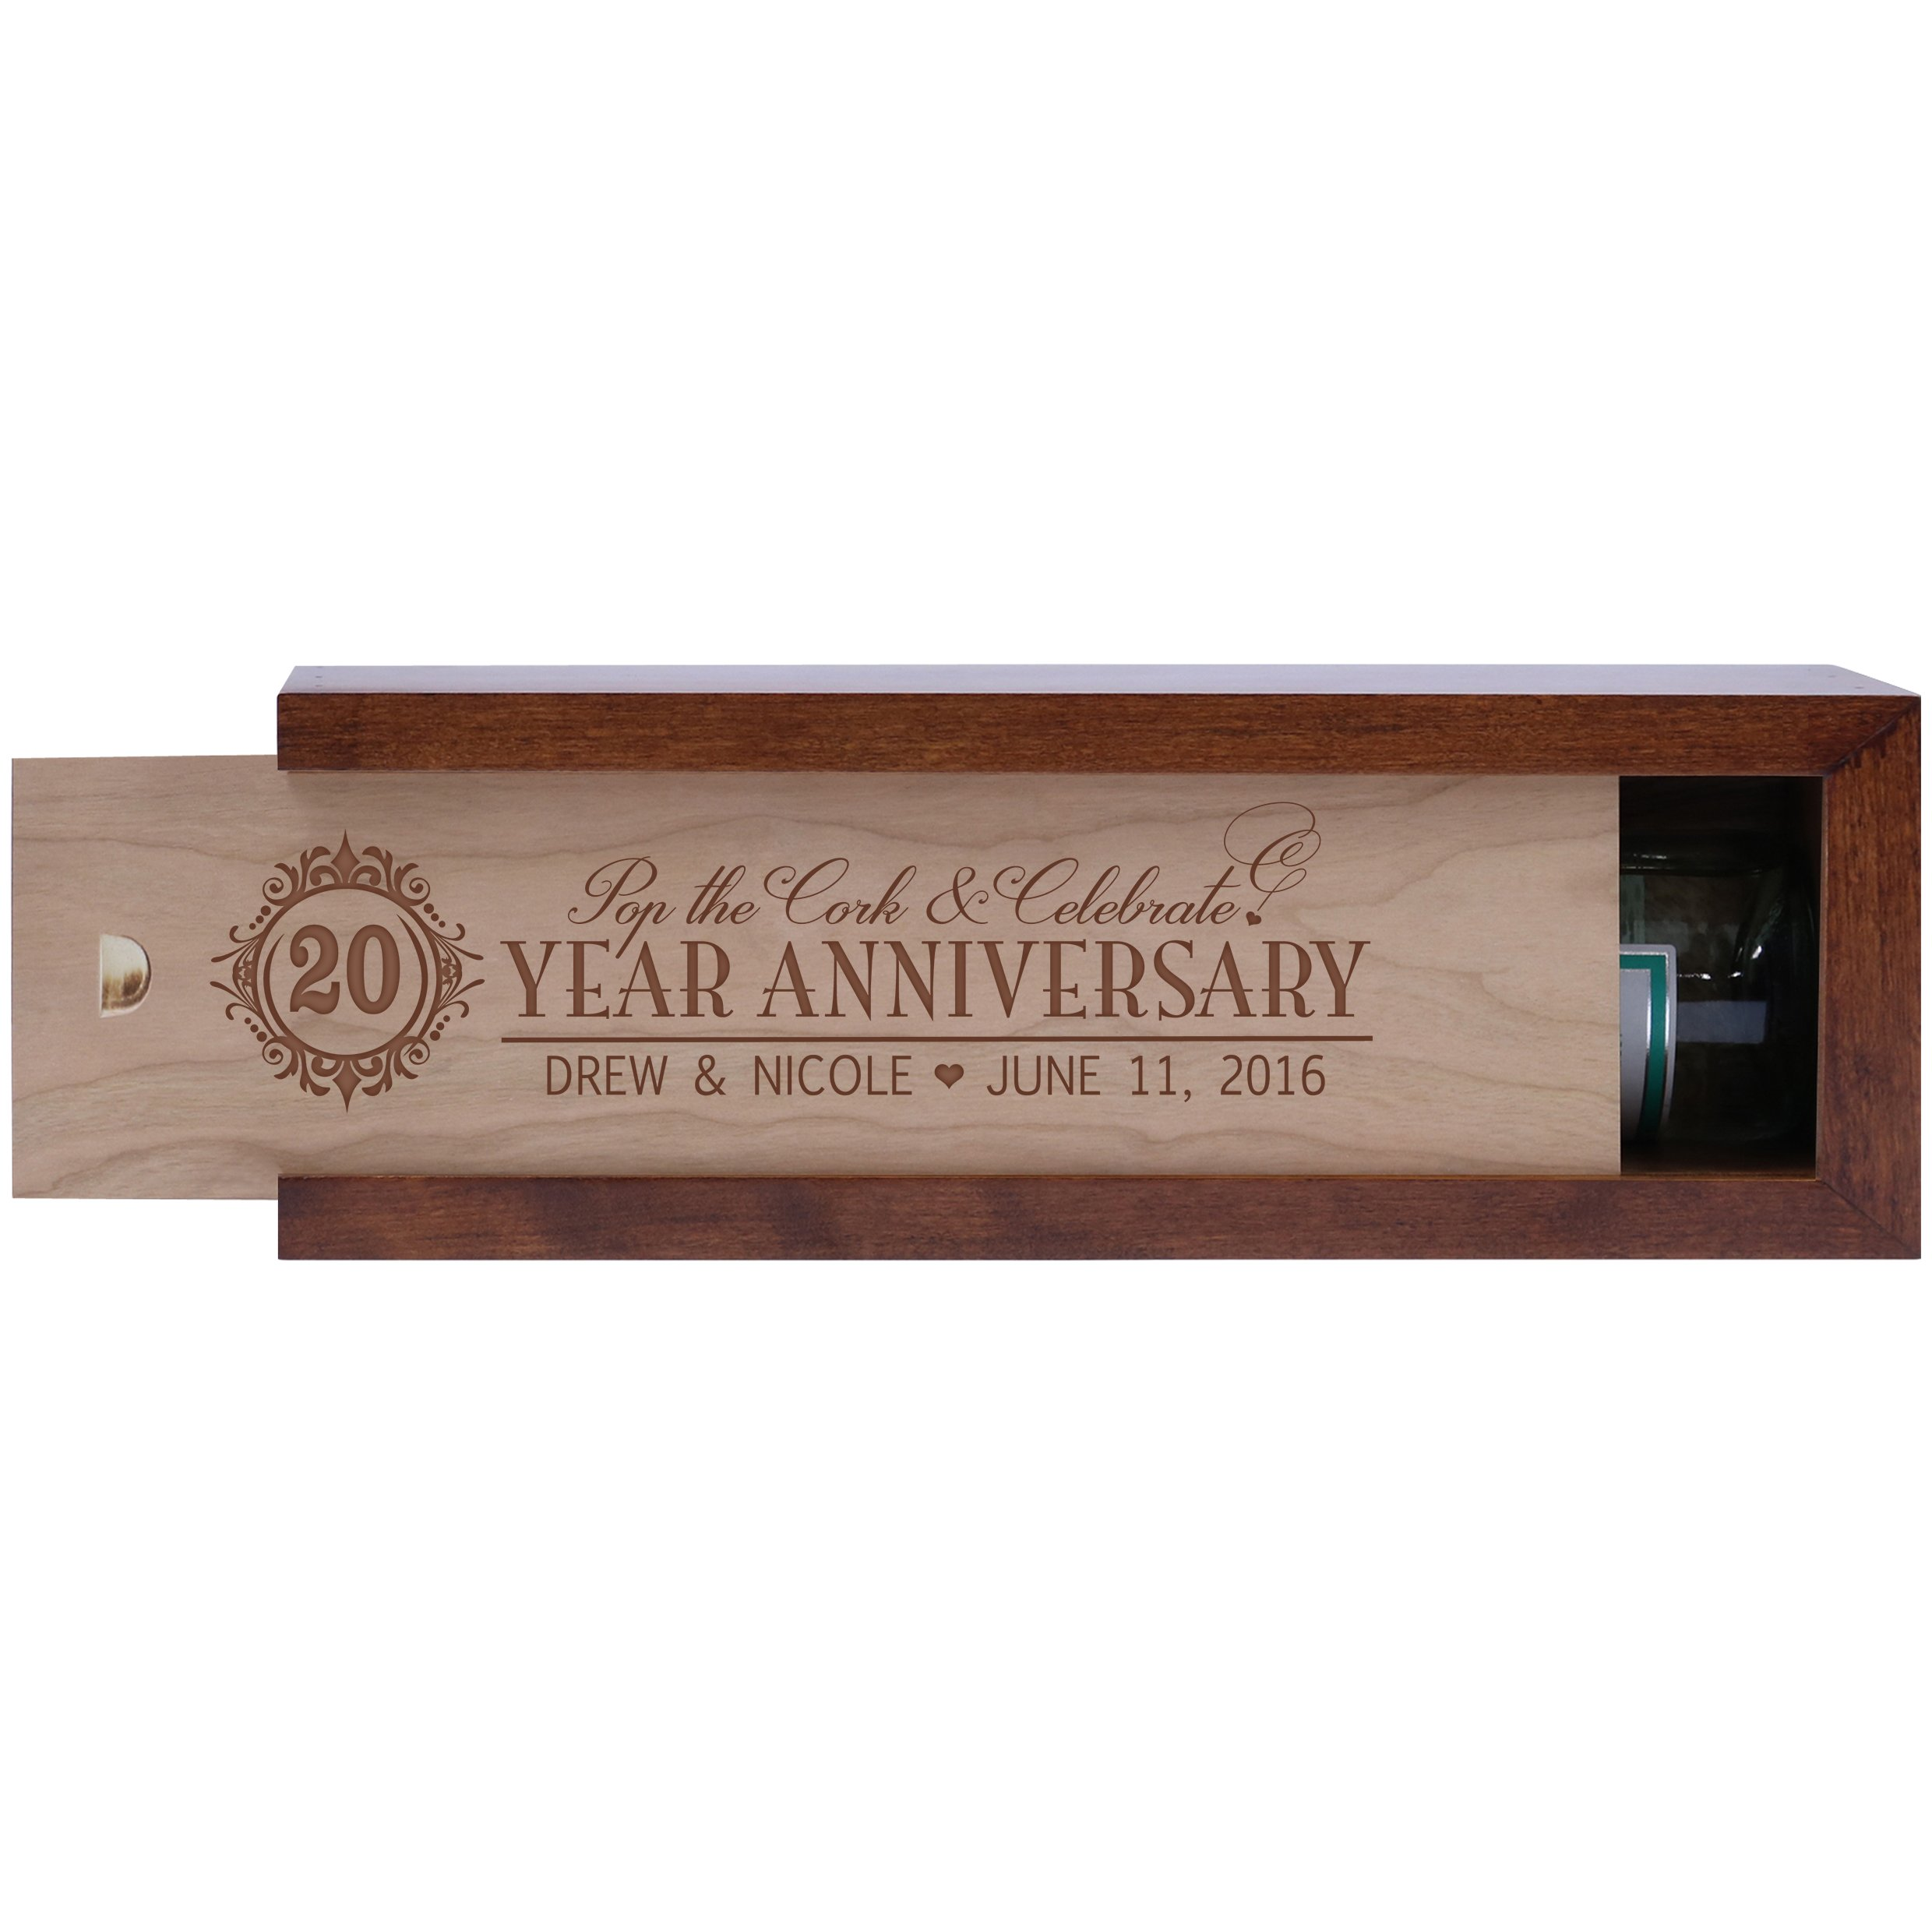 Personalized 20th year anniversary gift wood wine box Custom engraved gift for husband wife boyfriend or girlfriend Exclusively by American Wine Krafts (Dark Cherry Box with Unfinished Cherry Lid)